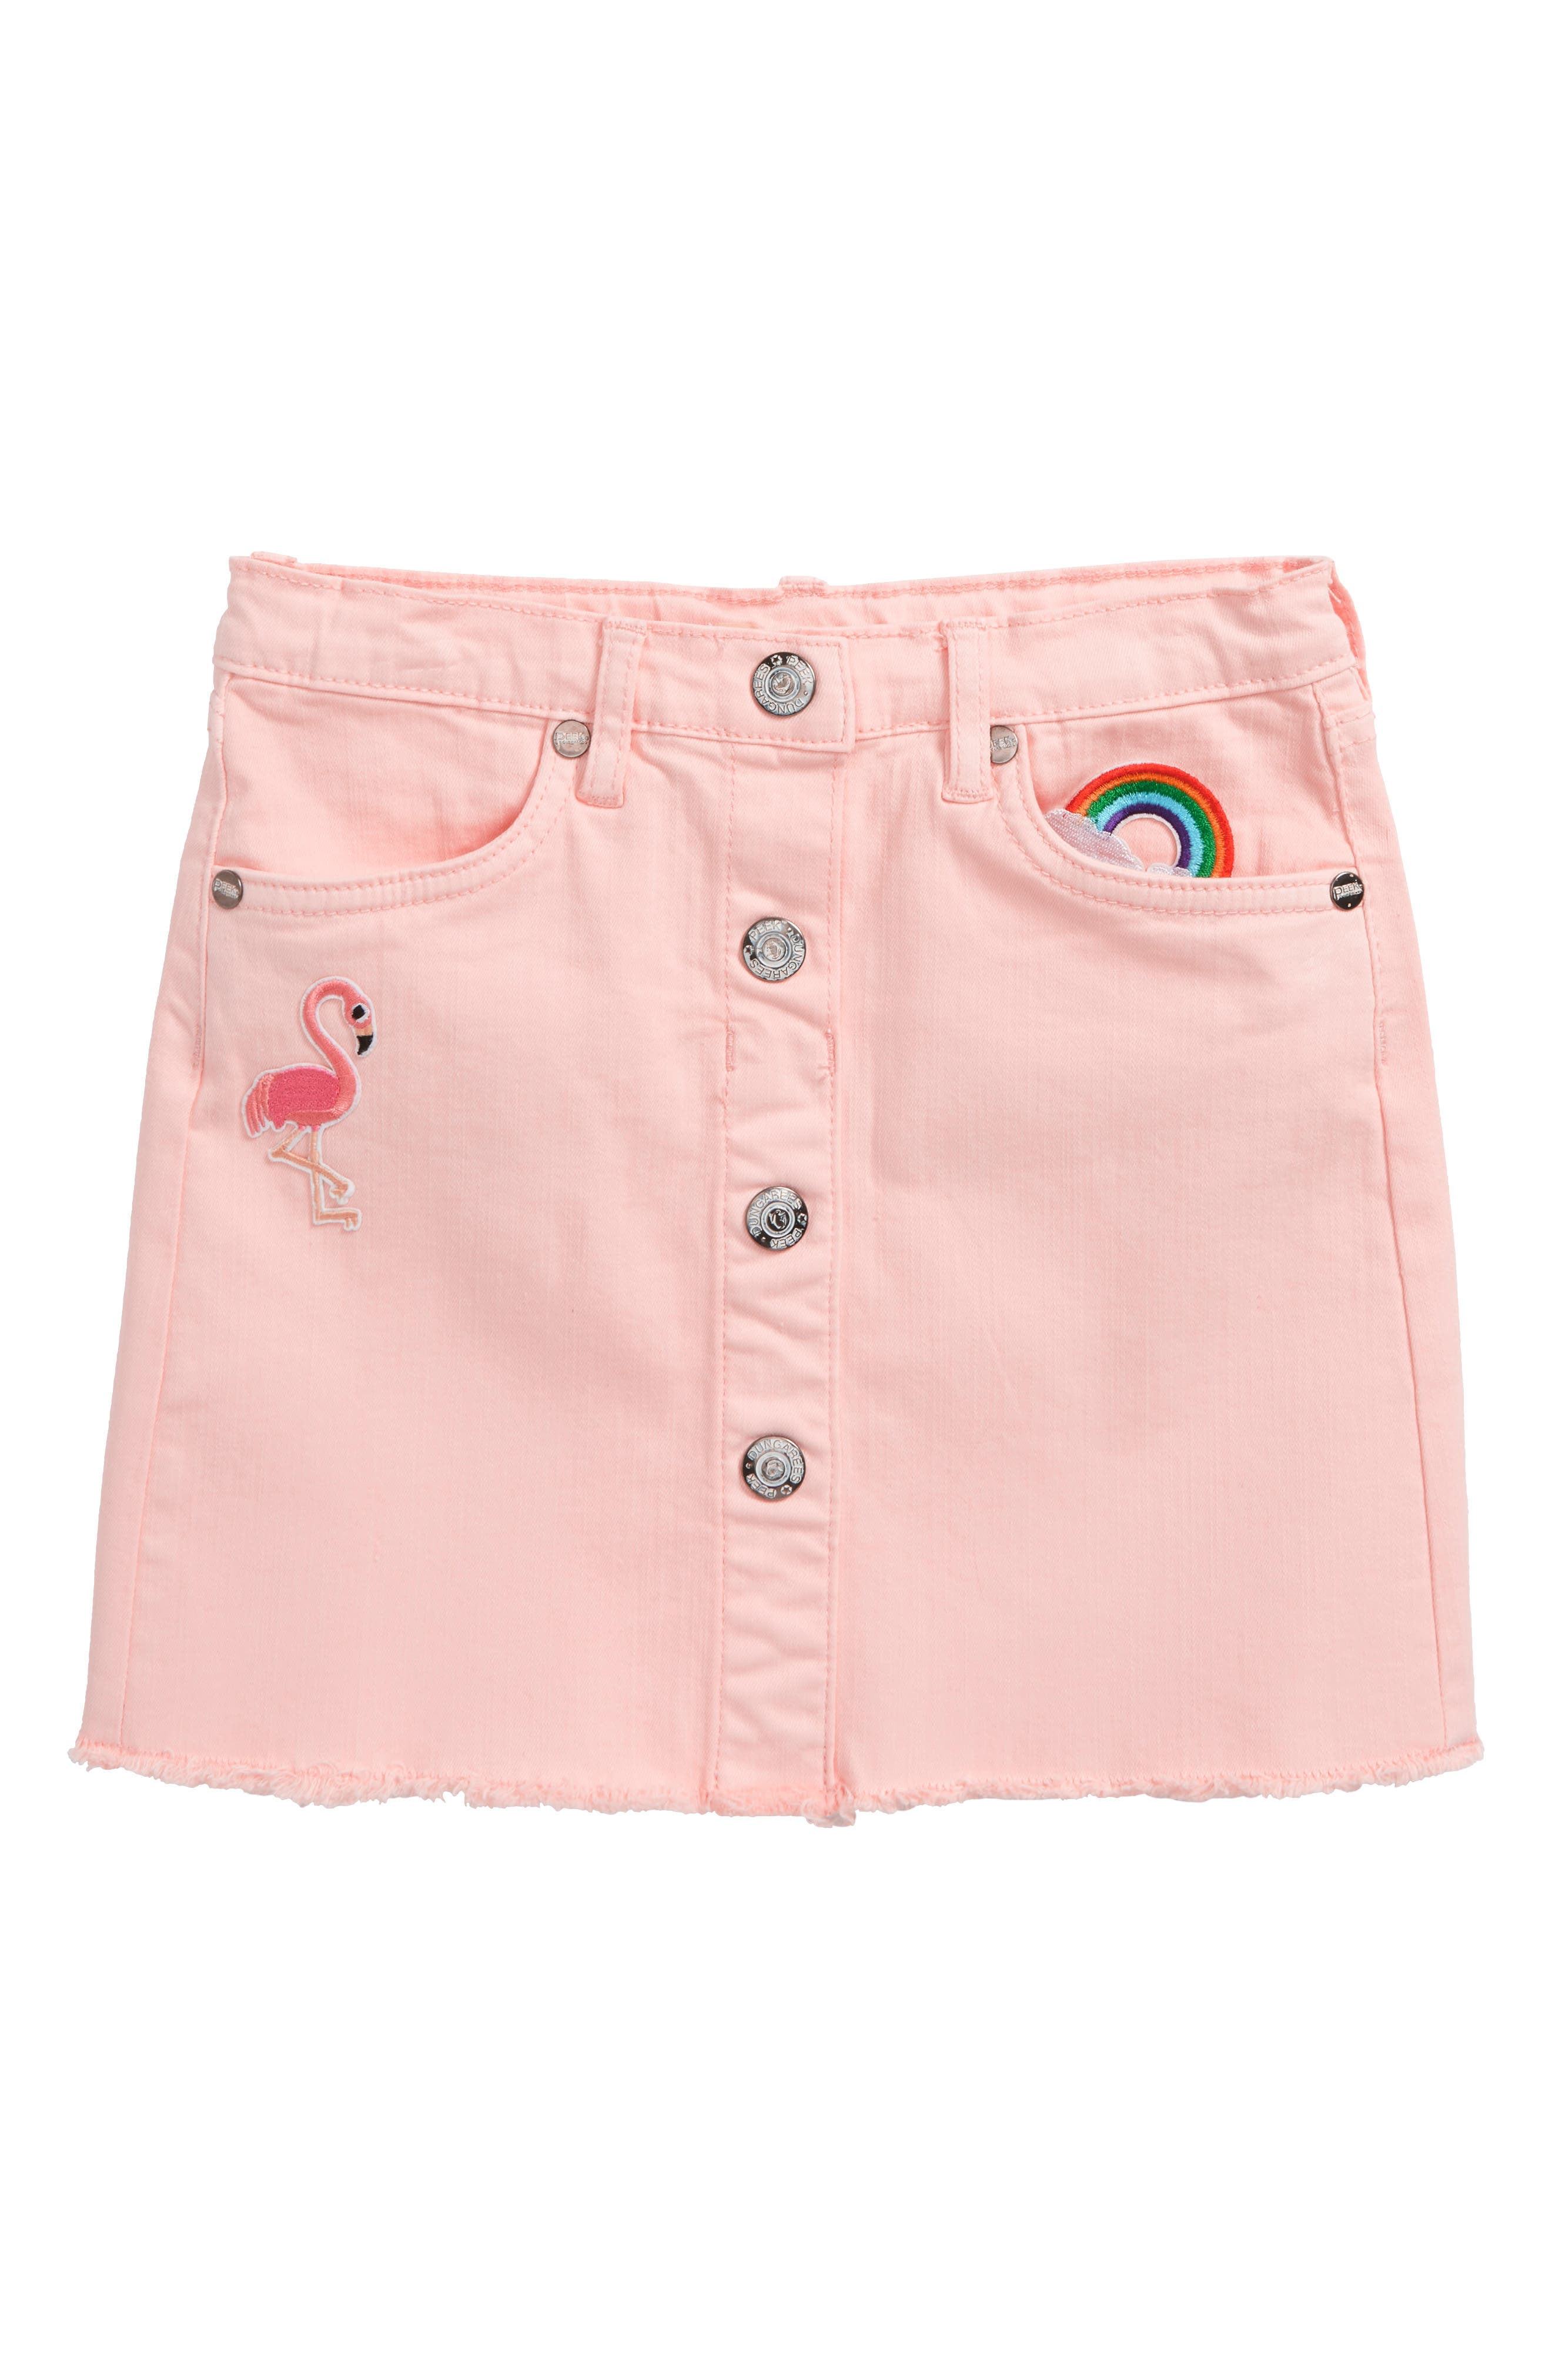 Flamingo Denim Skirt,                             Main thumbnail 1, color,